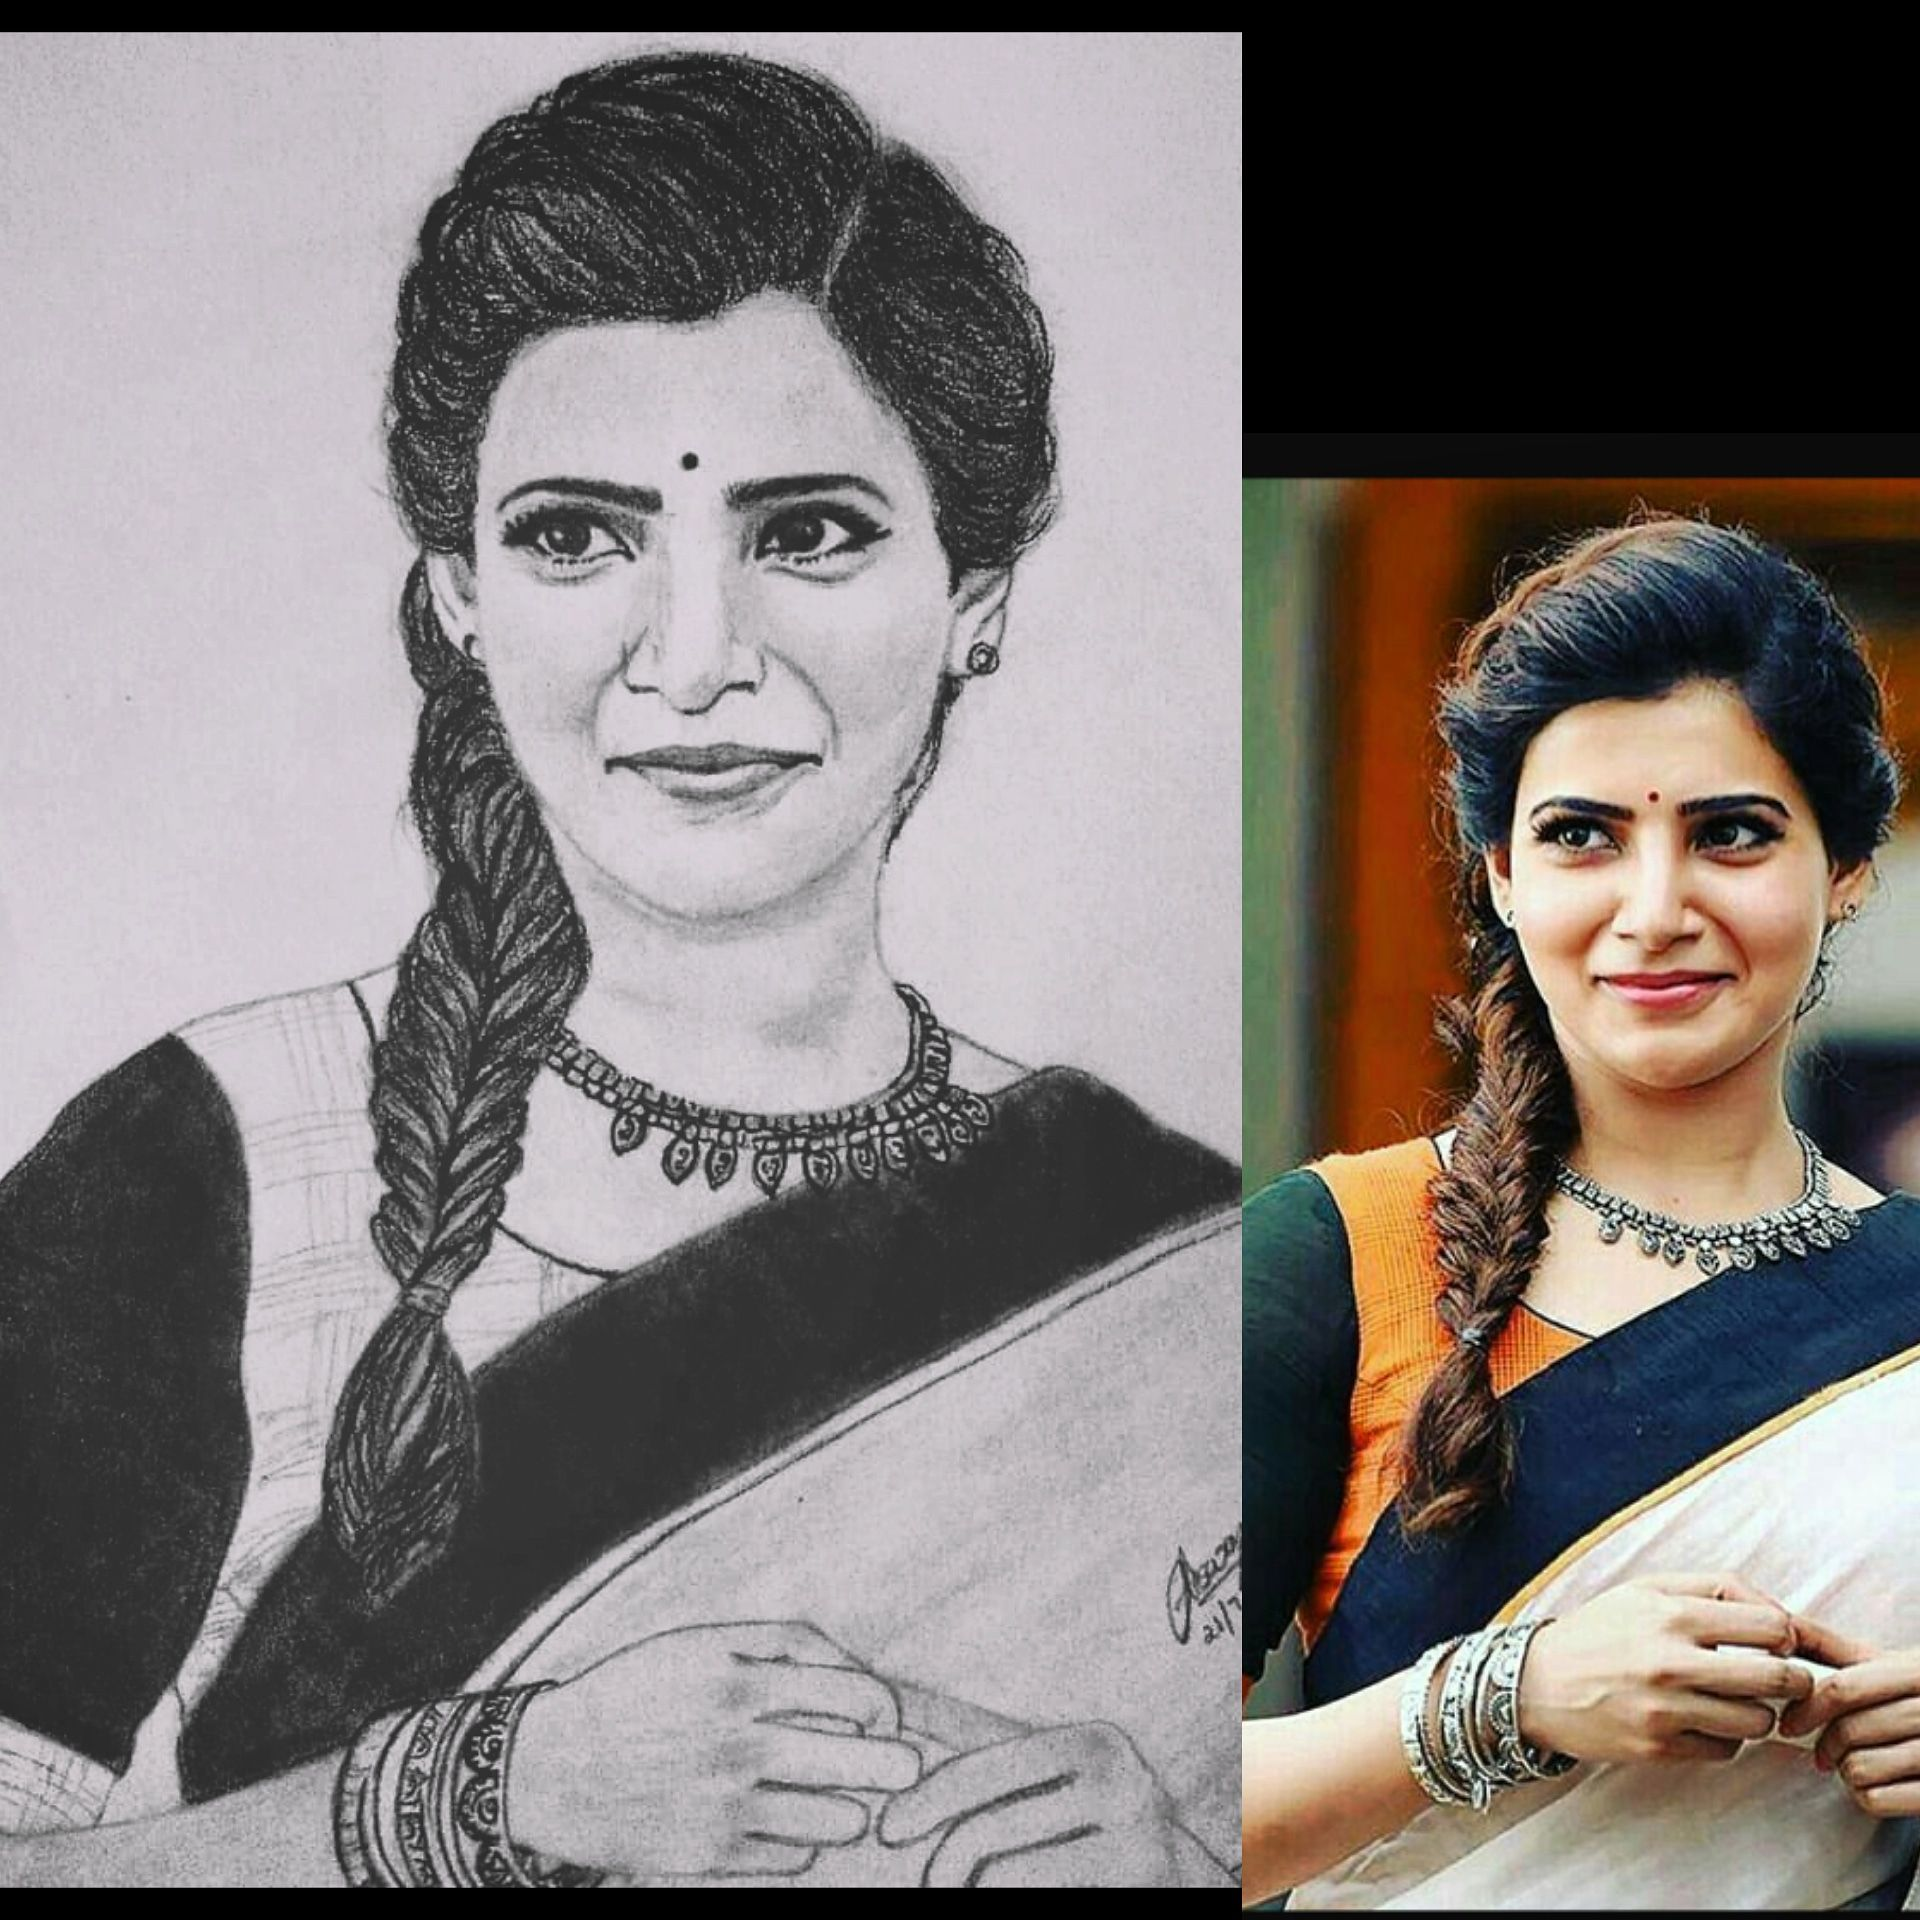 Samantha Pencil Drawing By Aiswarya Pencil Drawings Of Girls Art Drawings Simple Pencil Drawings Tumblr